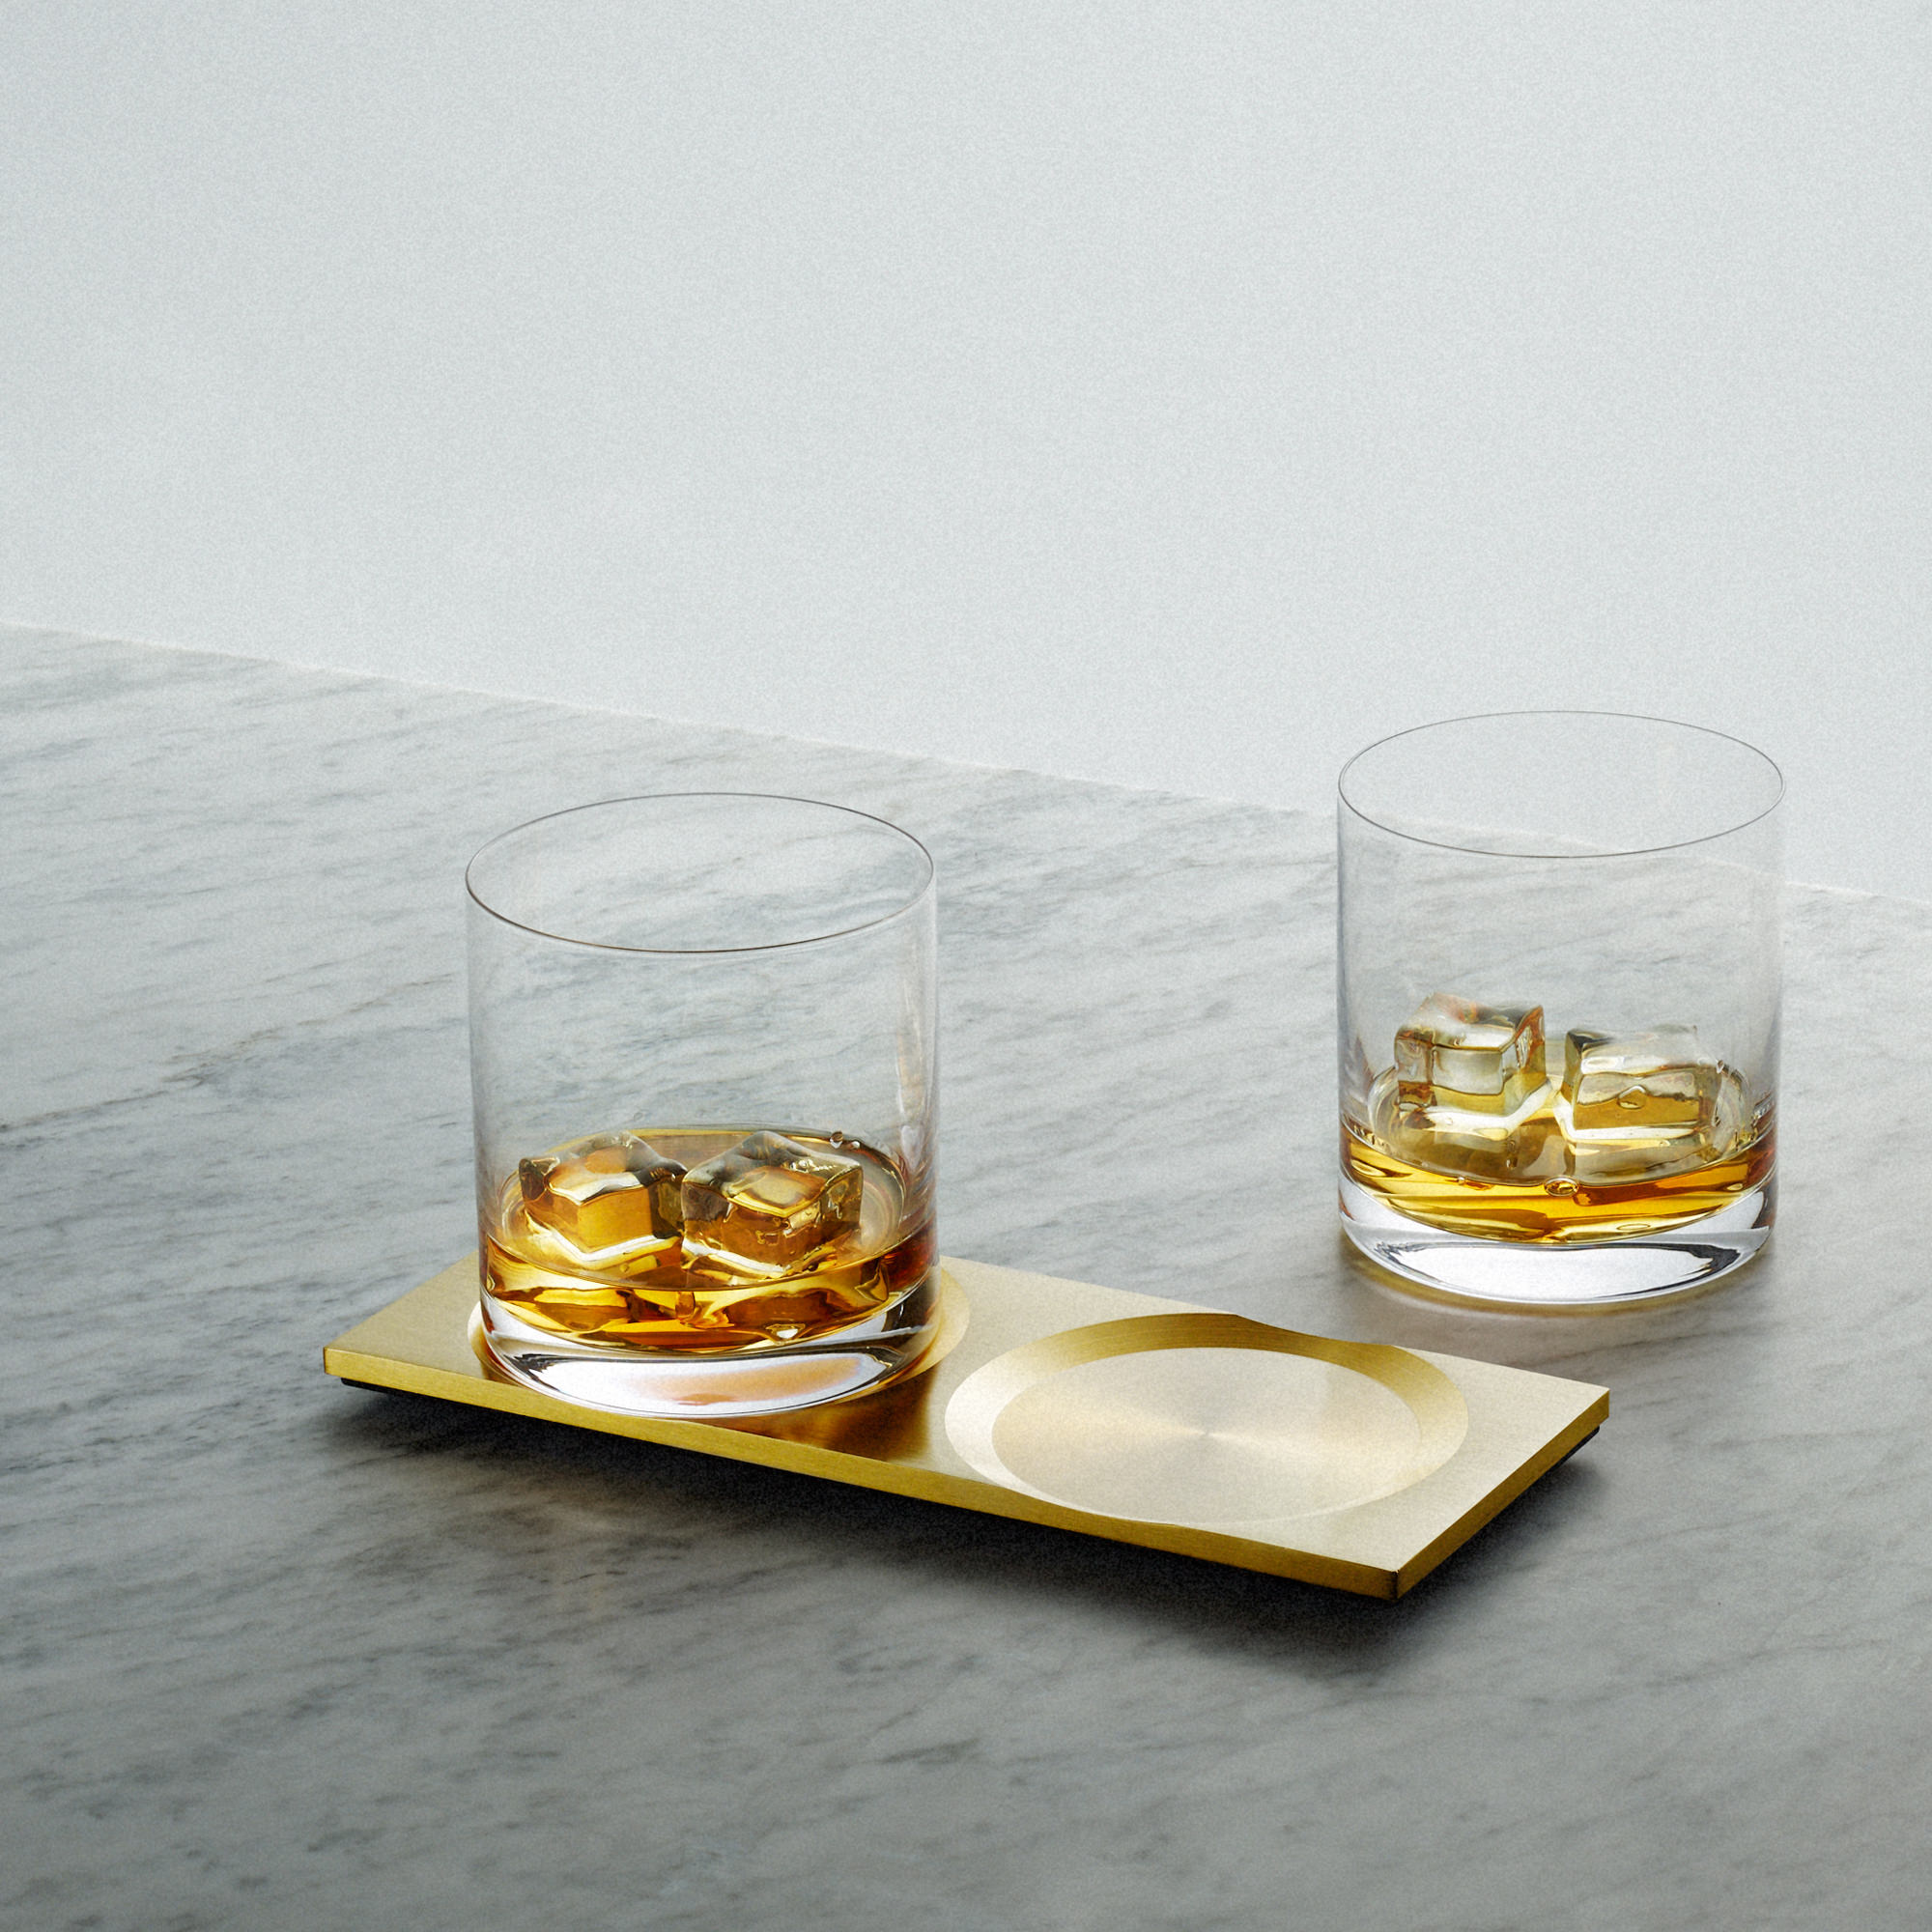 Machined Brass Plate and Crystal Whisky Glasses